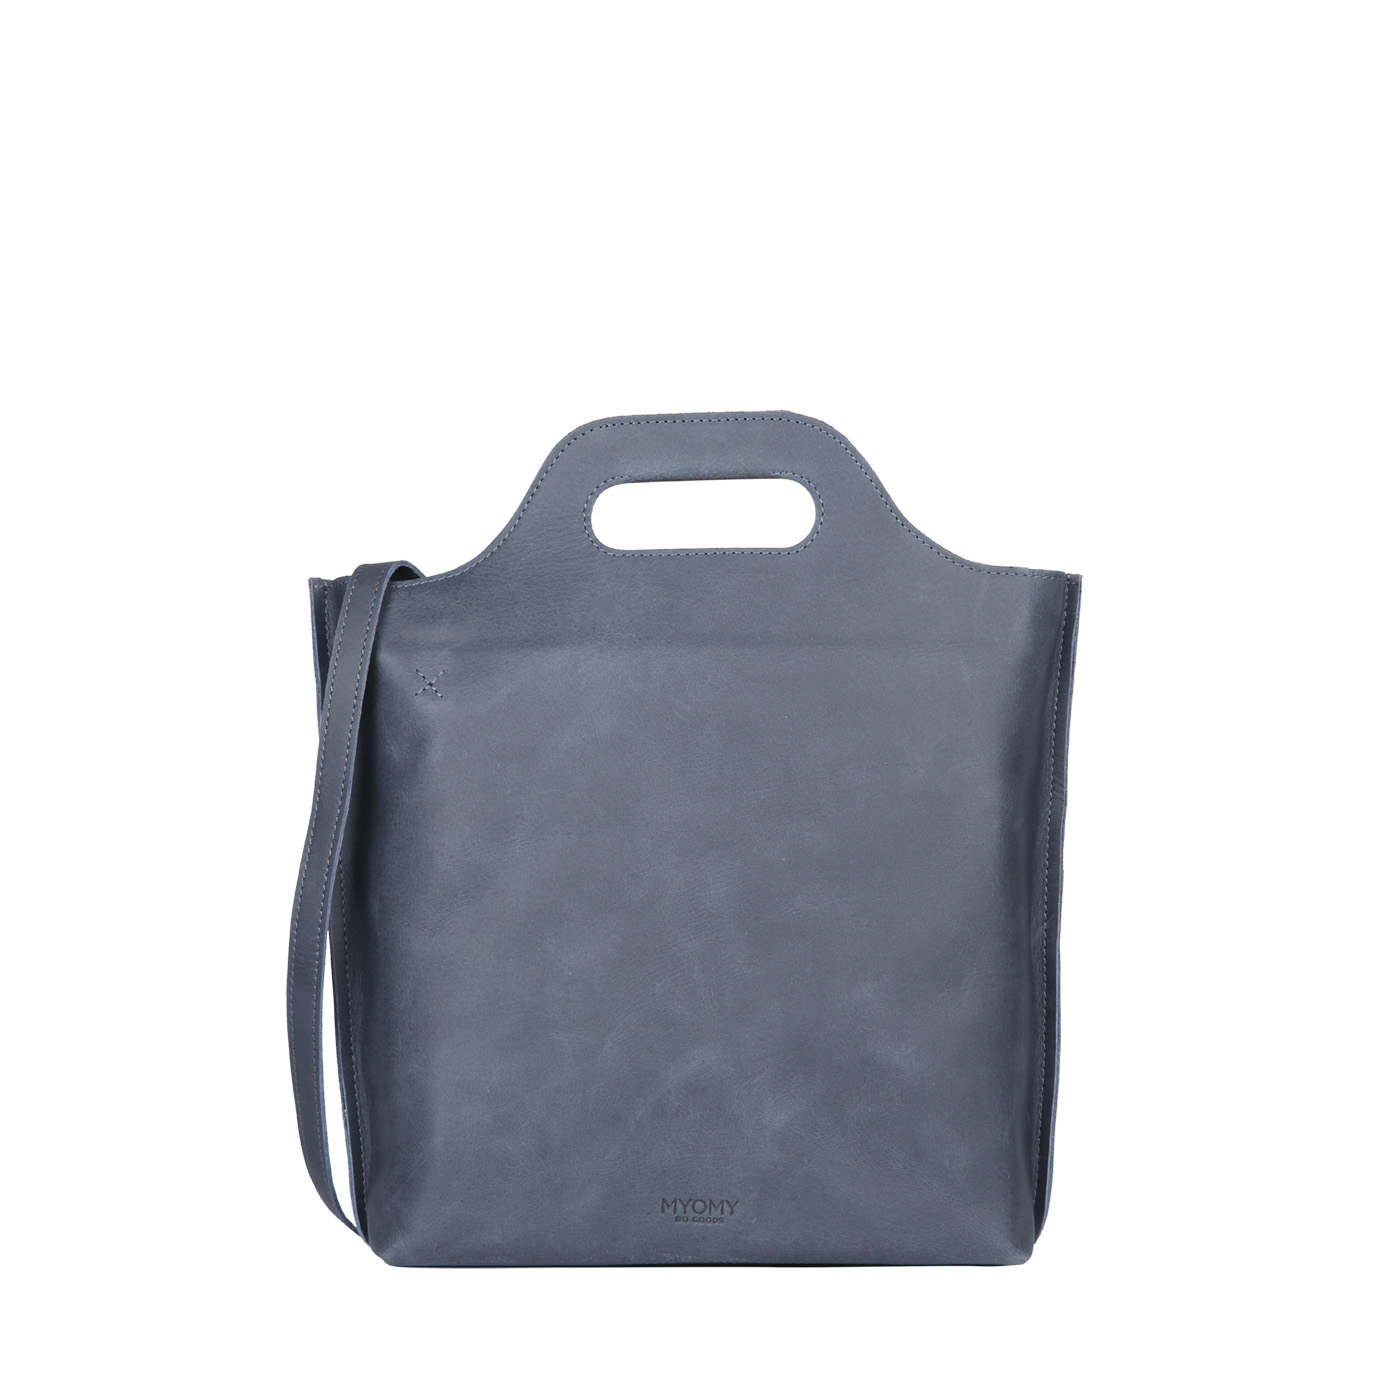 MY CARRY BAG shopper medium- hunter navy blue